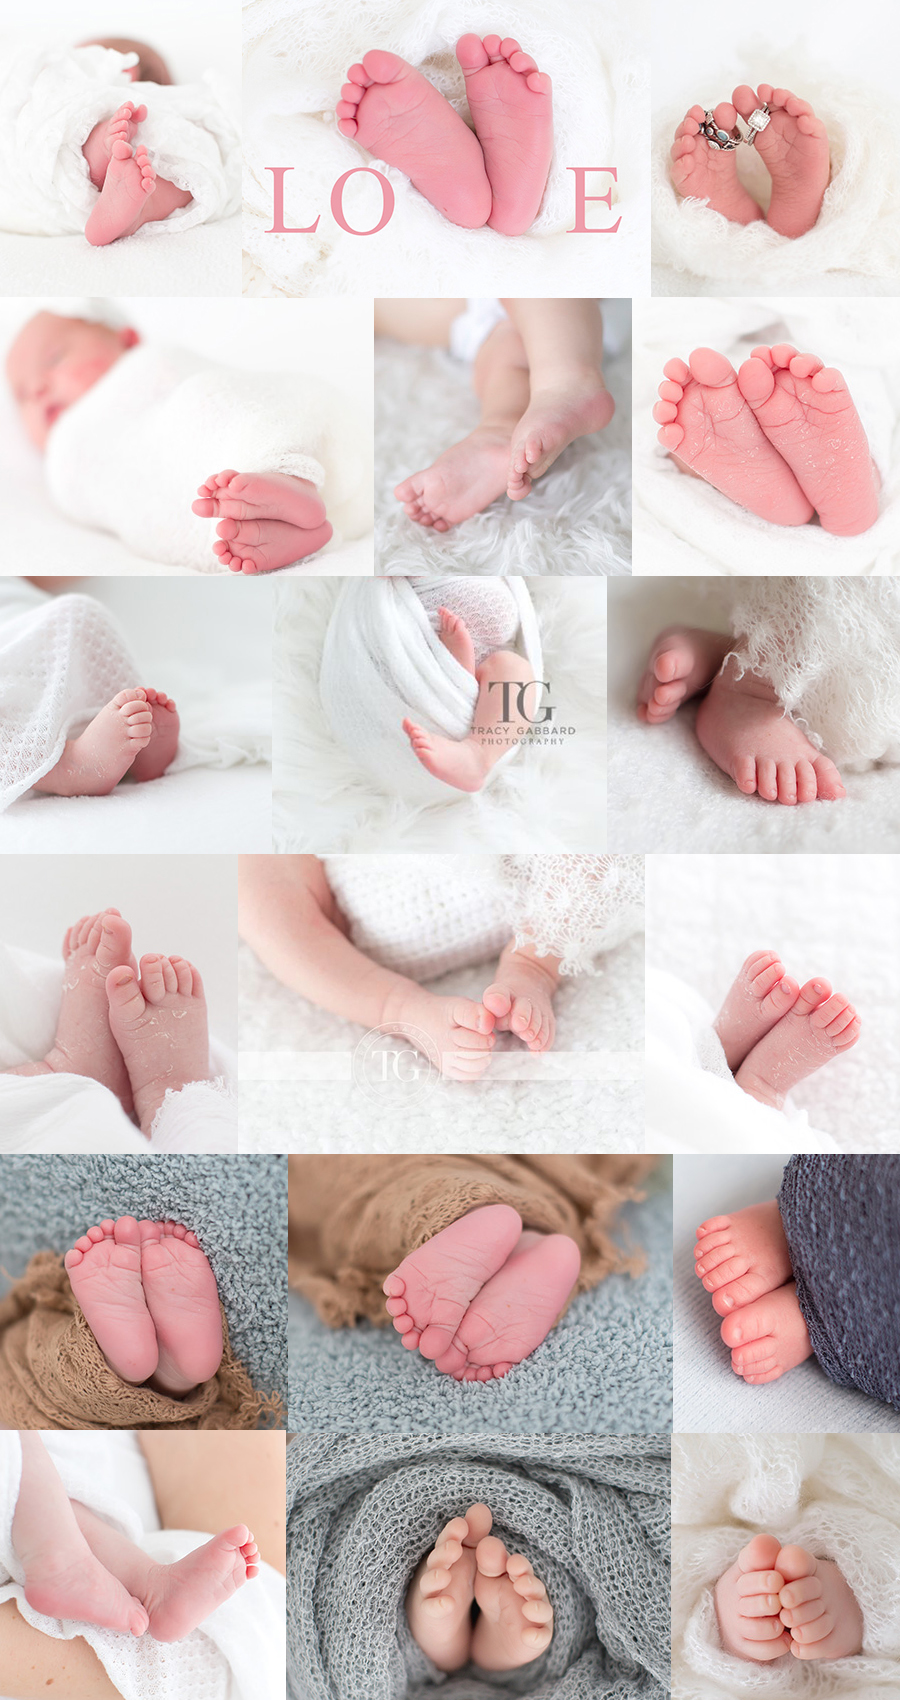 Small, Sweet, Tiny Little Baby Feet - Newborn Photography